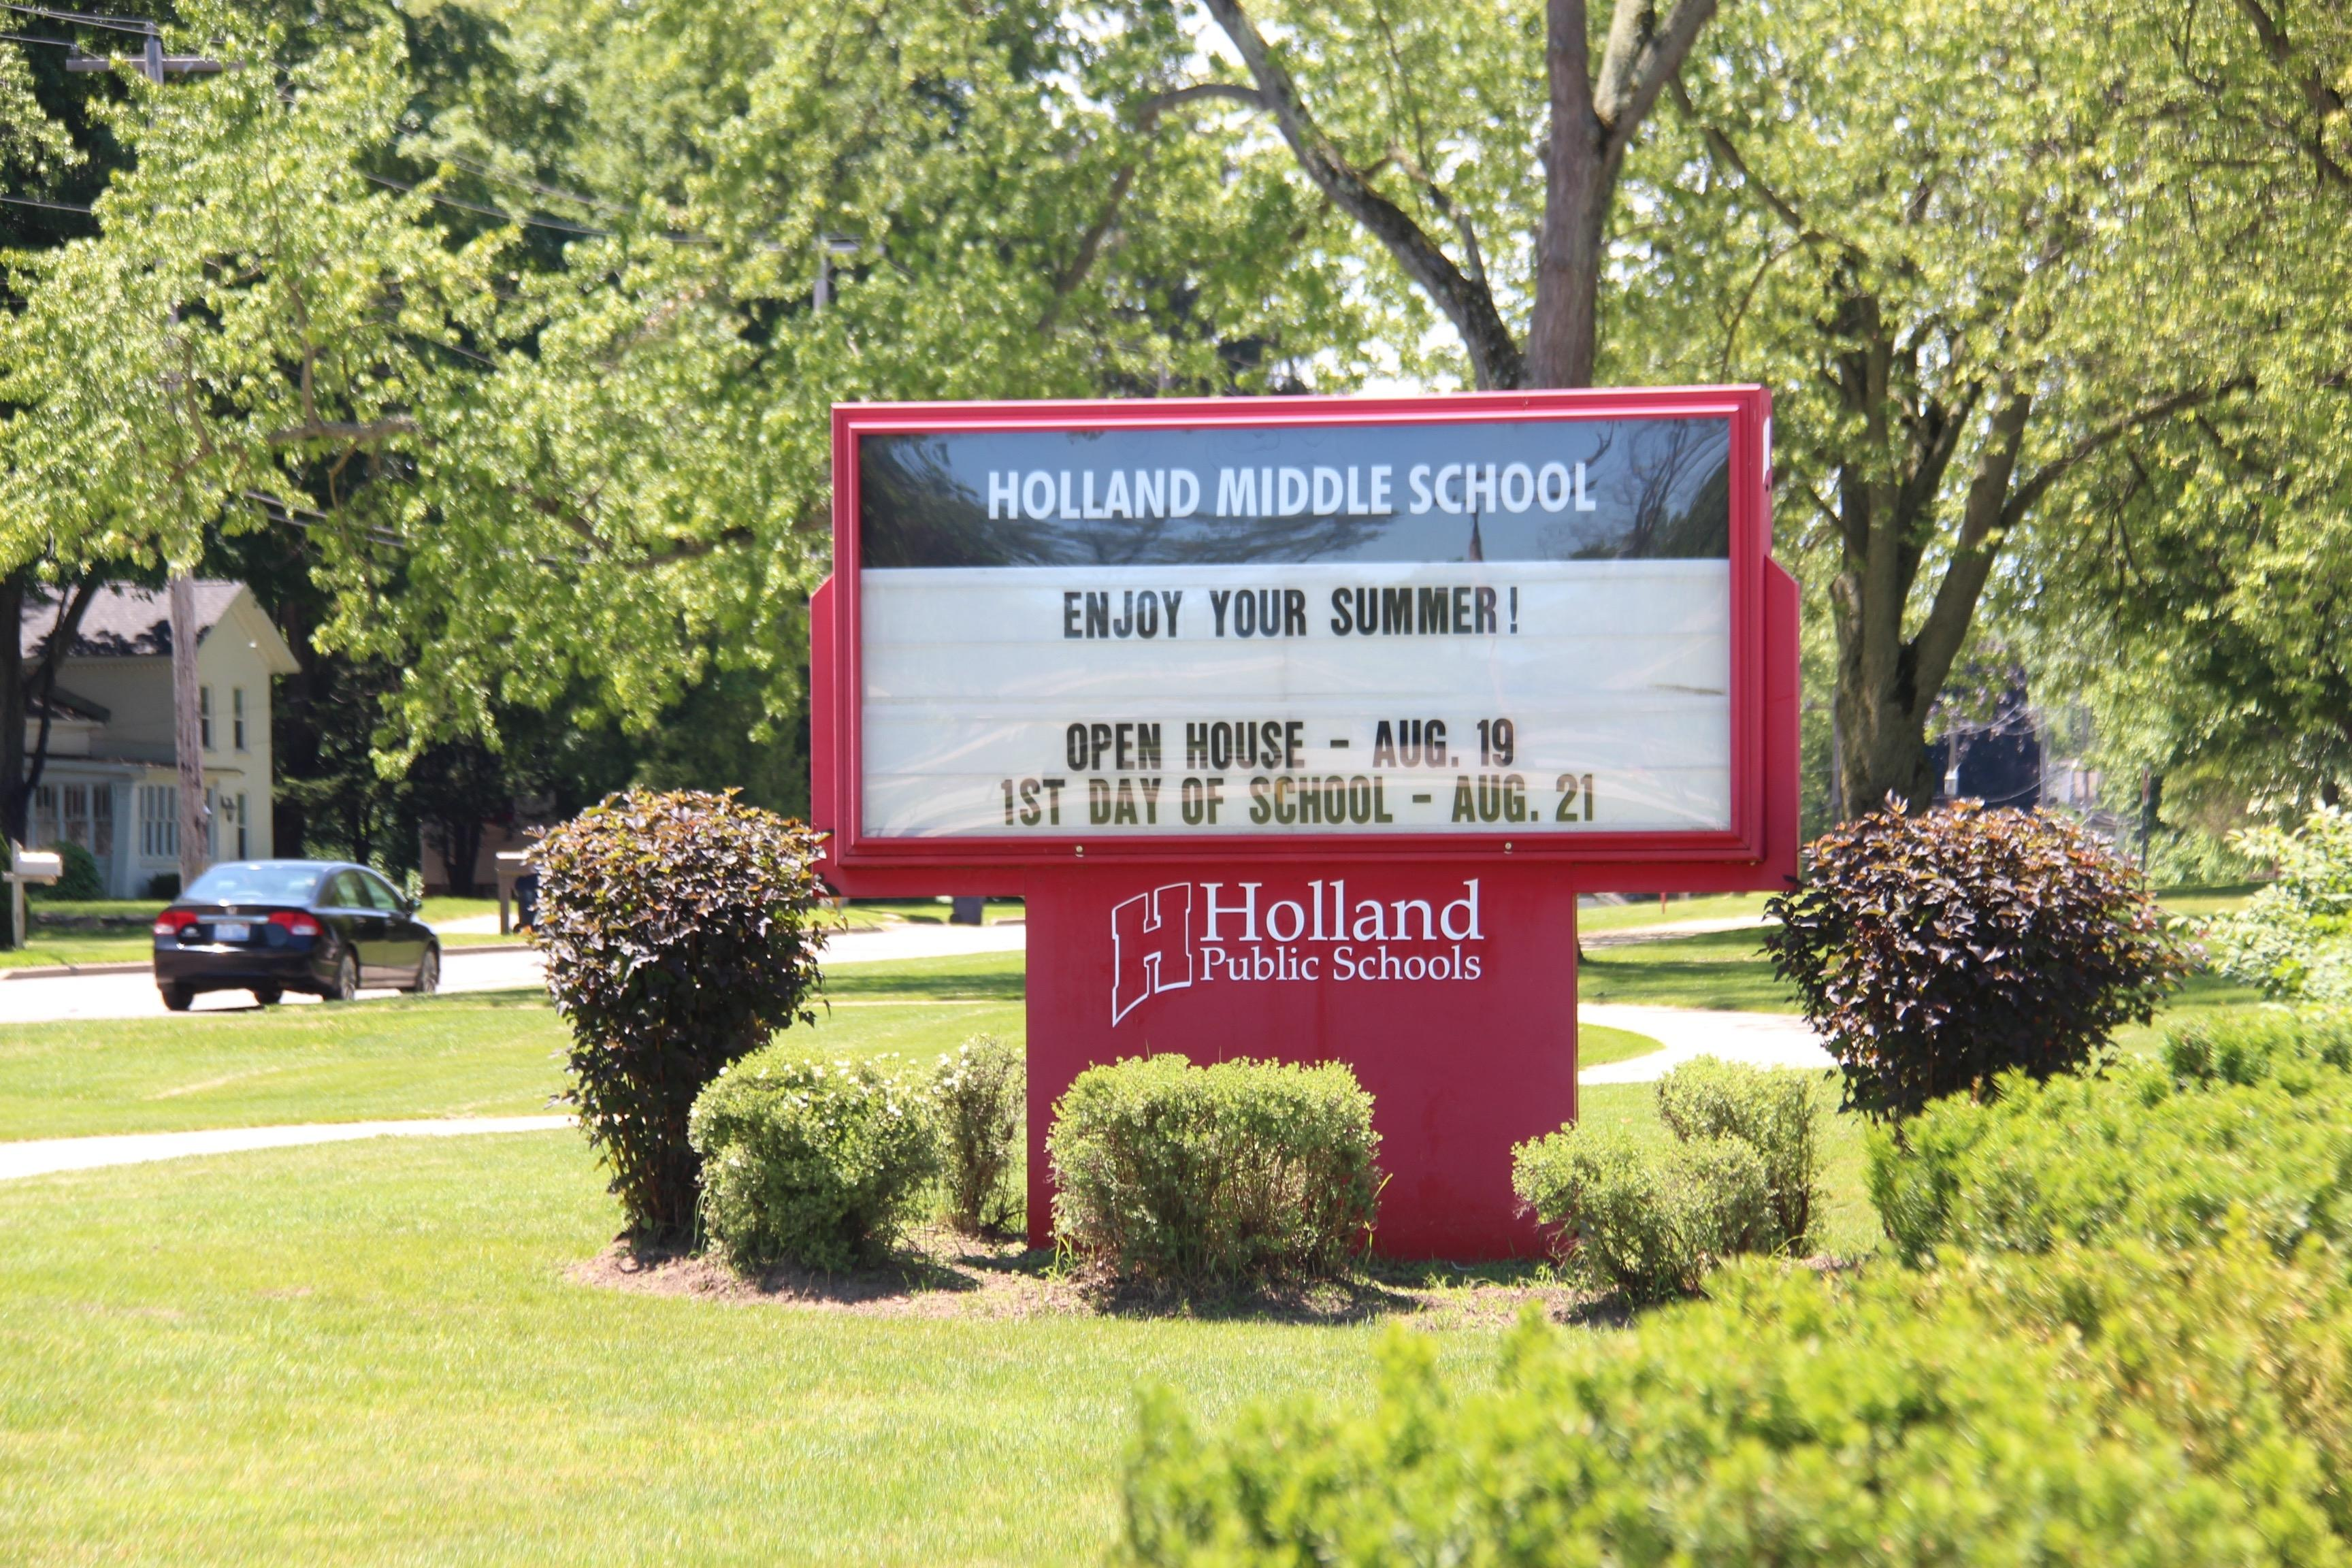 Holland Middle School sign